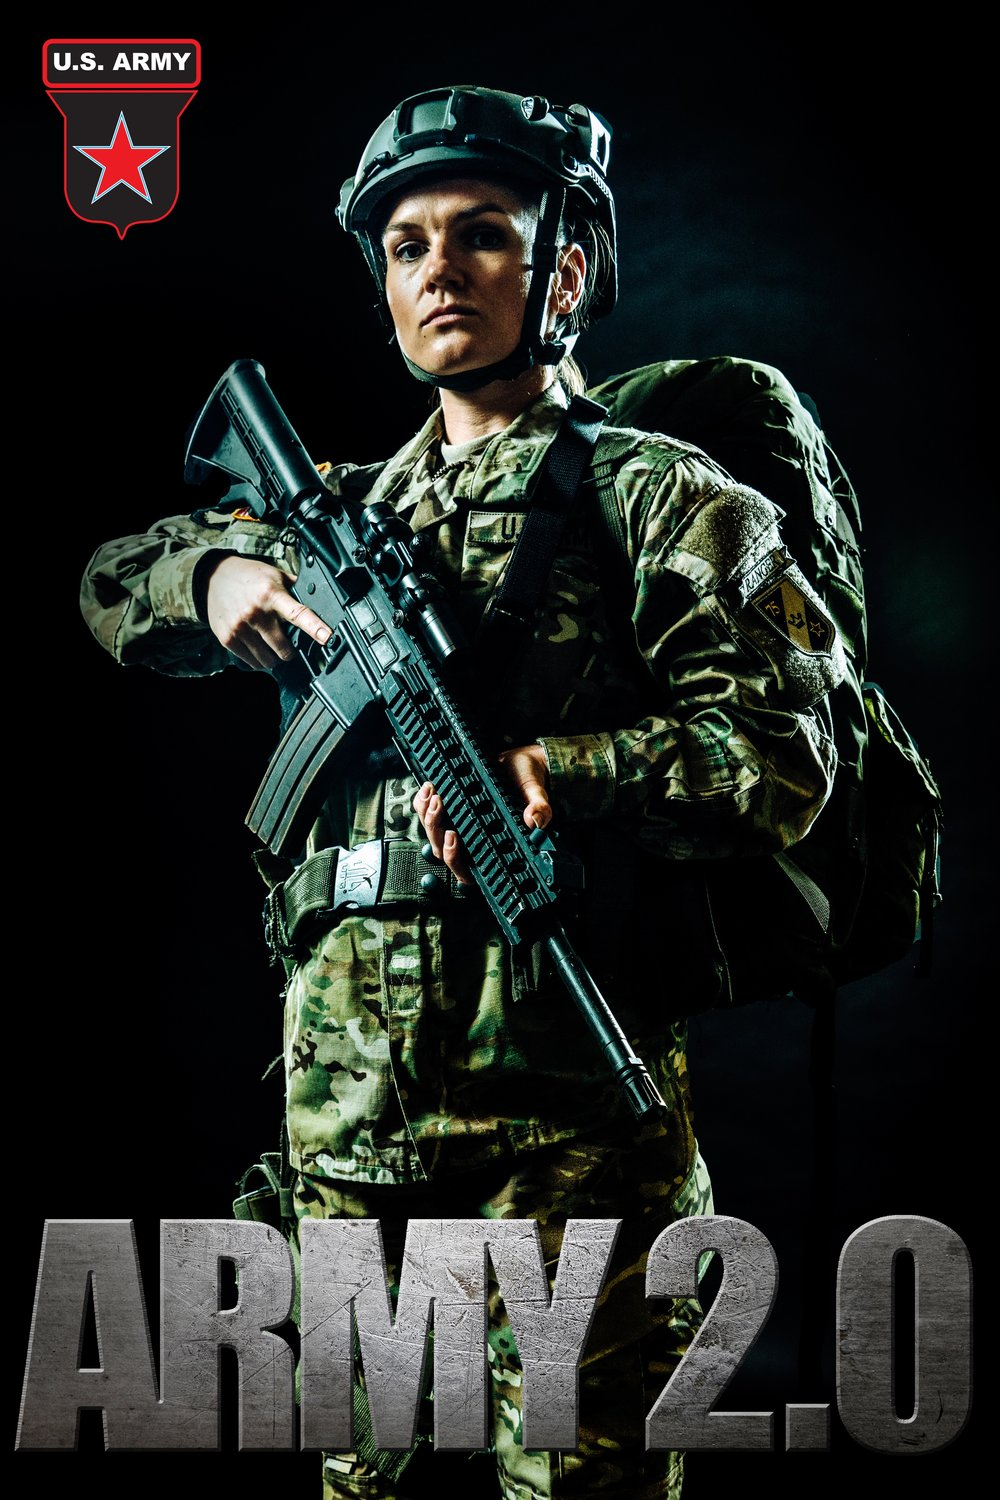 Army_Recruitment Poster.jpg.jpeg